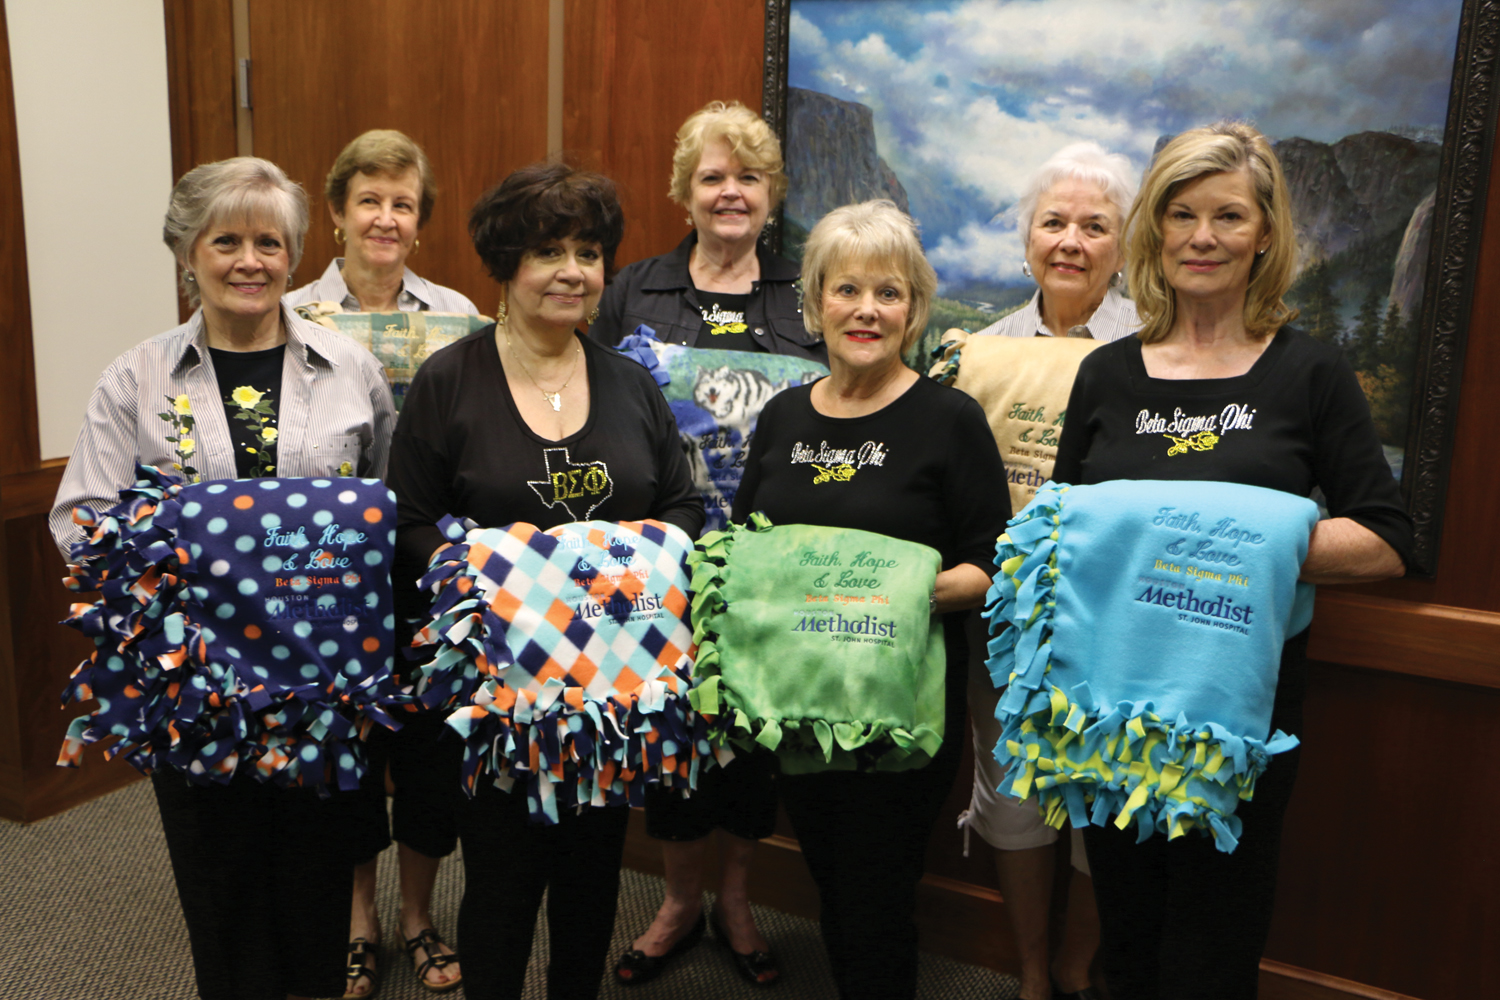 Beta Sigma Phi members from left, Nancy Cobbs, Beryl Hill, Penny Linton, Joyce Wilkerson, Jo Ann Luttgeharm, Peggy Fisher and Mary Jane Kugle with blankets they lovingly create for Houston Methodist St. John patients.